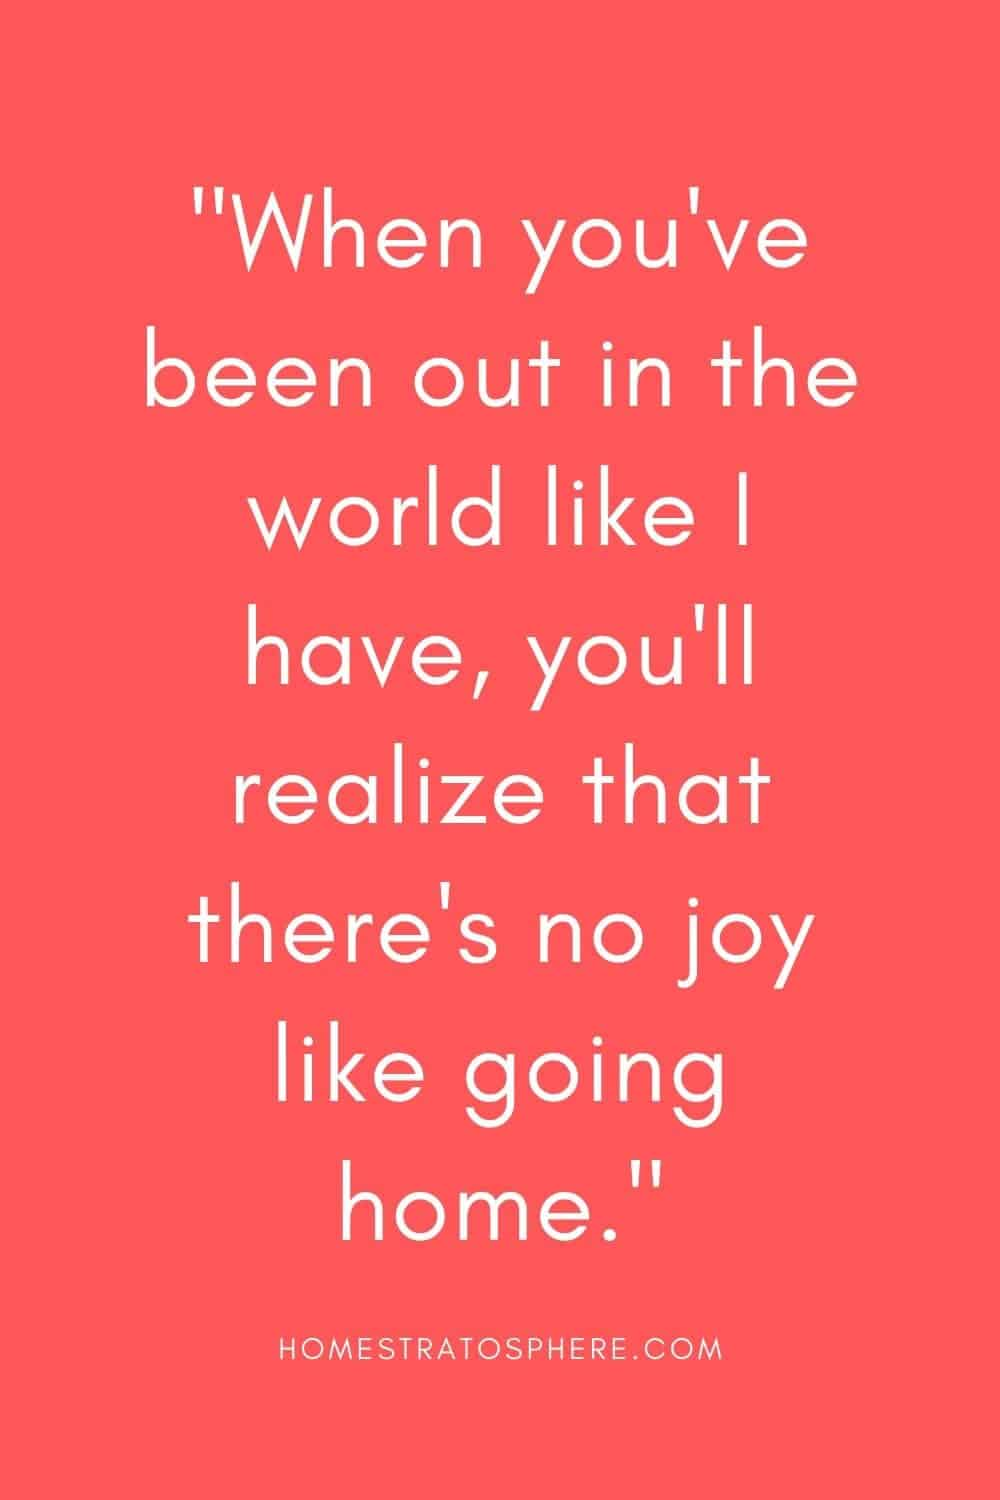 """""""When you've been out in the world like I have, you'll realize that there's no joy like going home."""""""